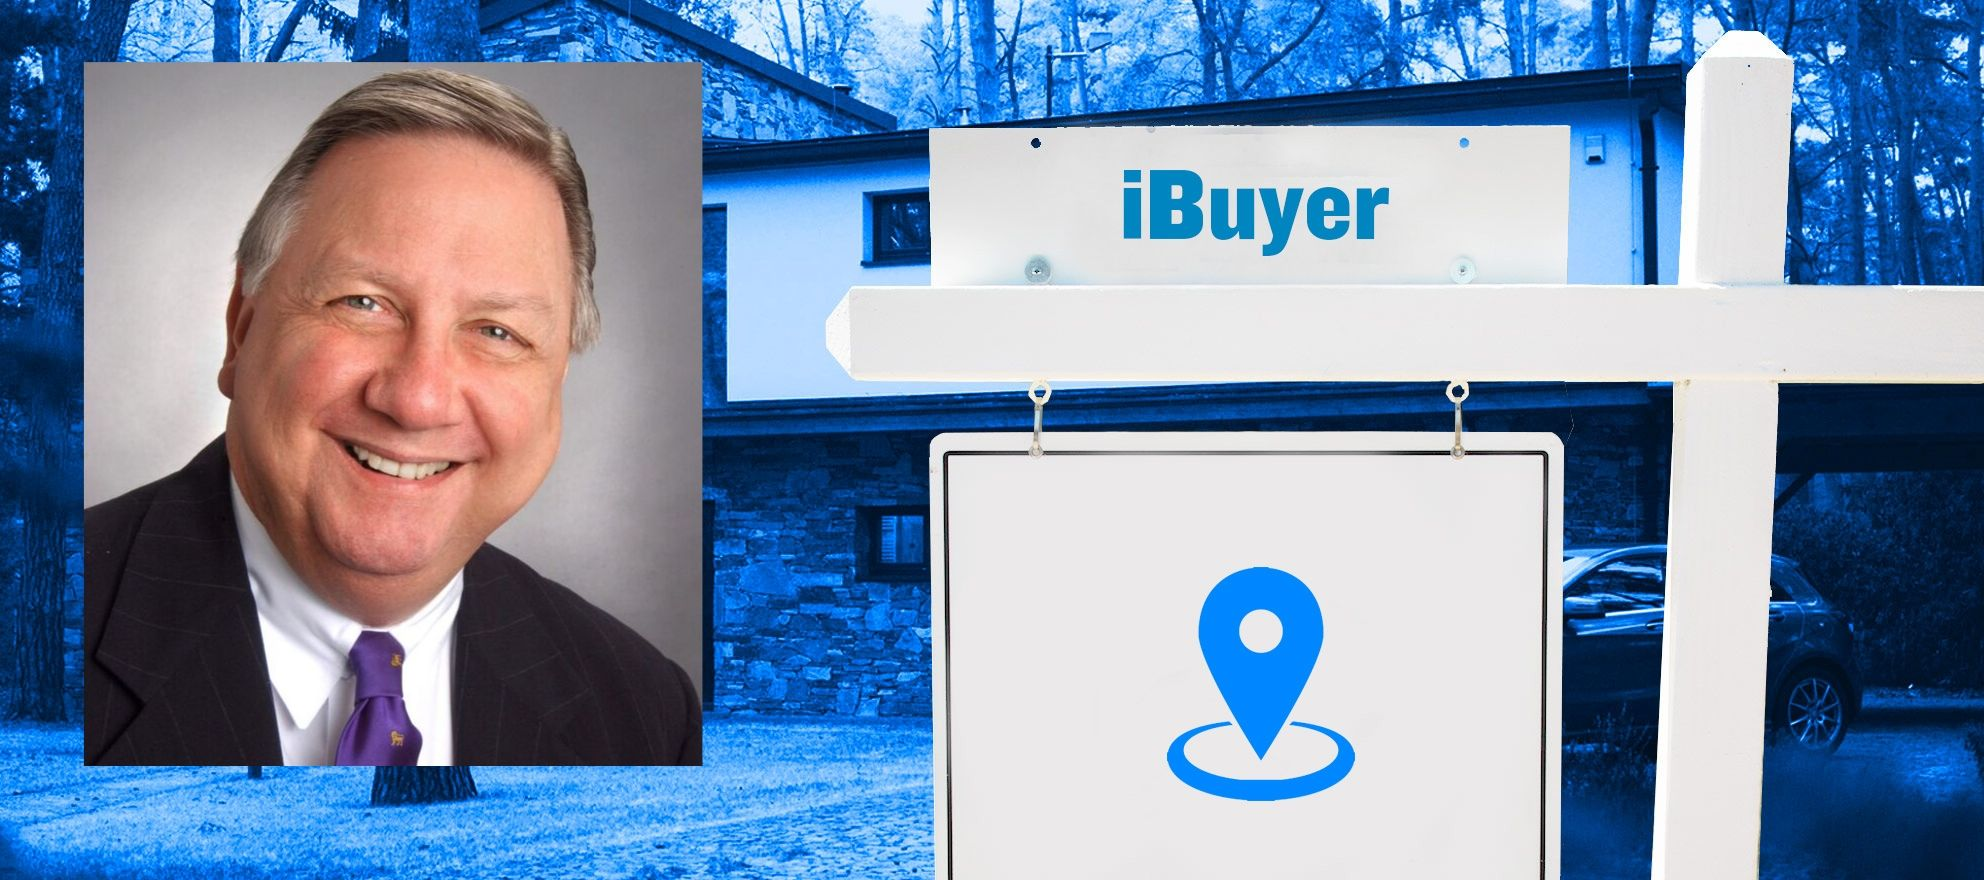 Houston Association of Realtors President: 41% of current sellers would consider using an iBuyer